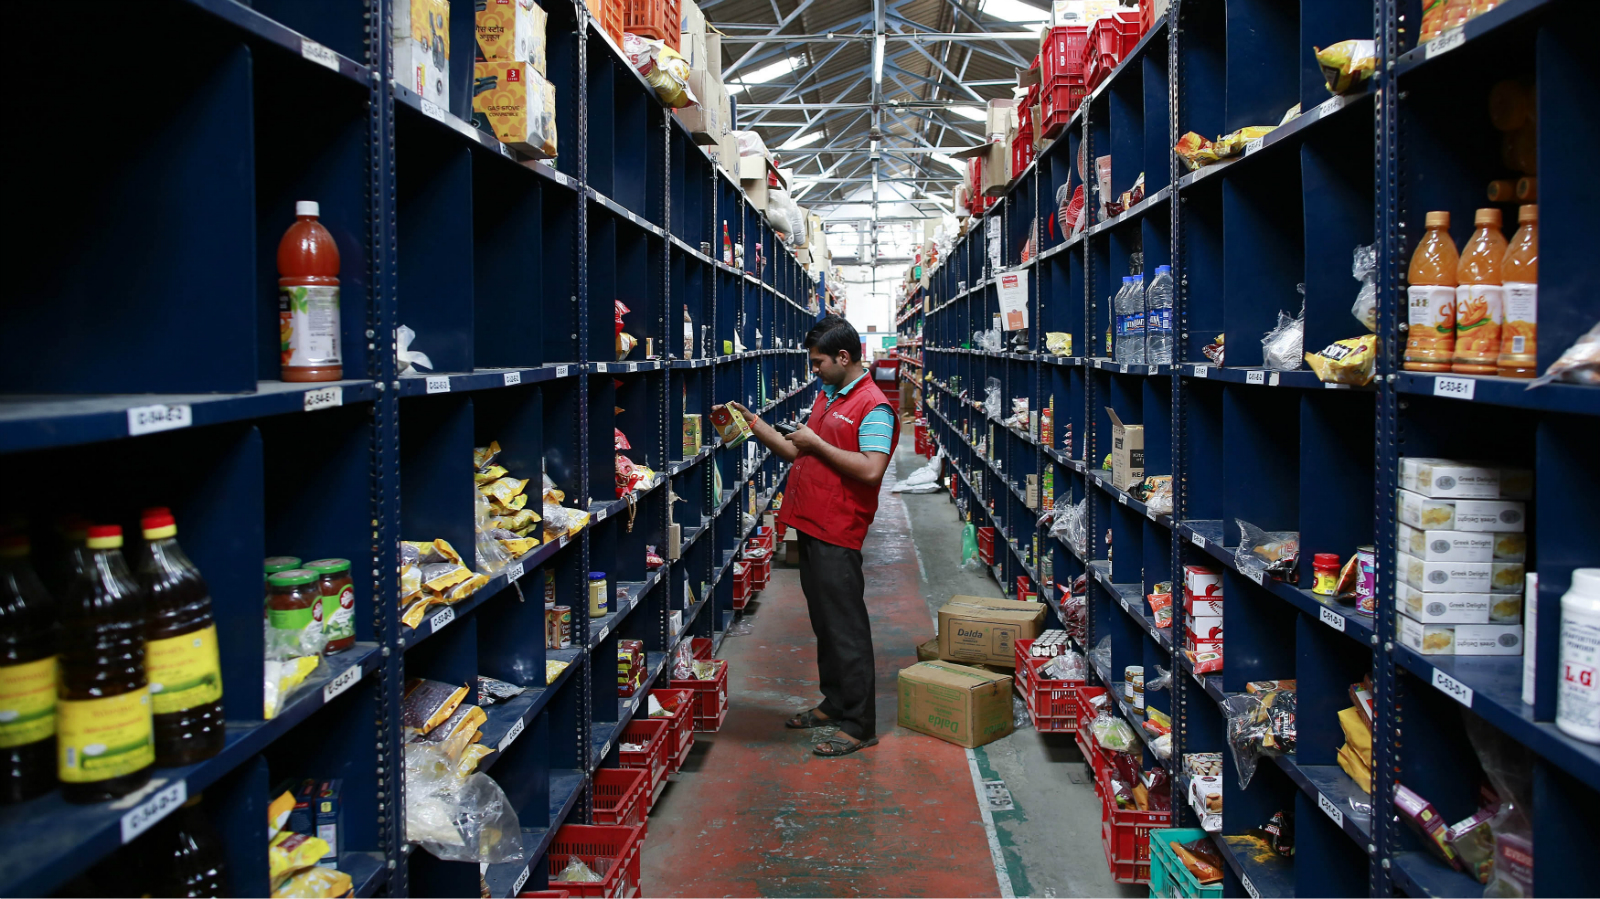 An employee scans a package for an order at a Big Basket warehouse on the outskirts of Mumbai November 4, 2014. Put off by snarled city traffic and a shortage of parking, more Indians are shopping for groceries online, helping e-tailers like Bigbasket.com and Localbanya.com turn in profits while supermarkets are struggling. Picture taken November 4. To match INDIA-INTERNET/RETAIL